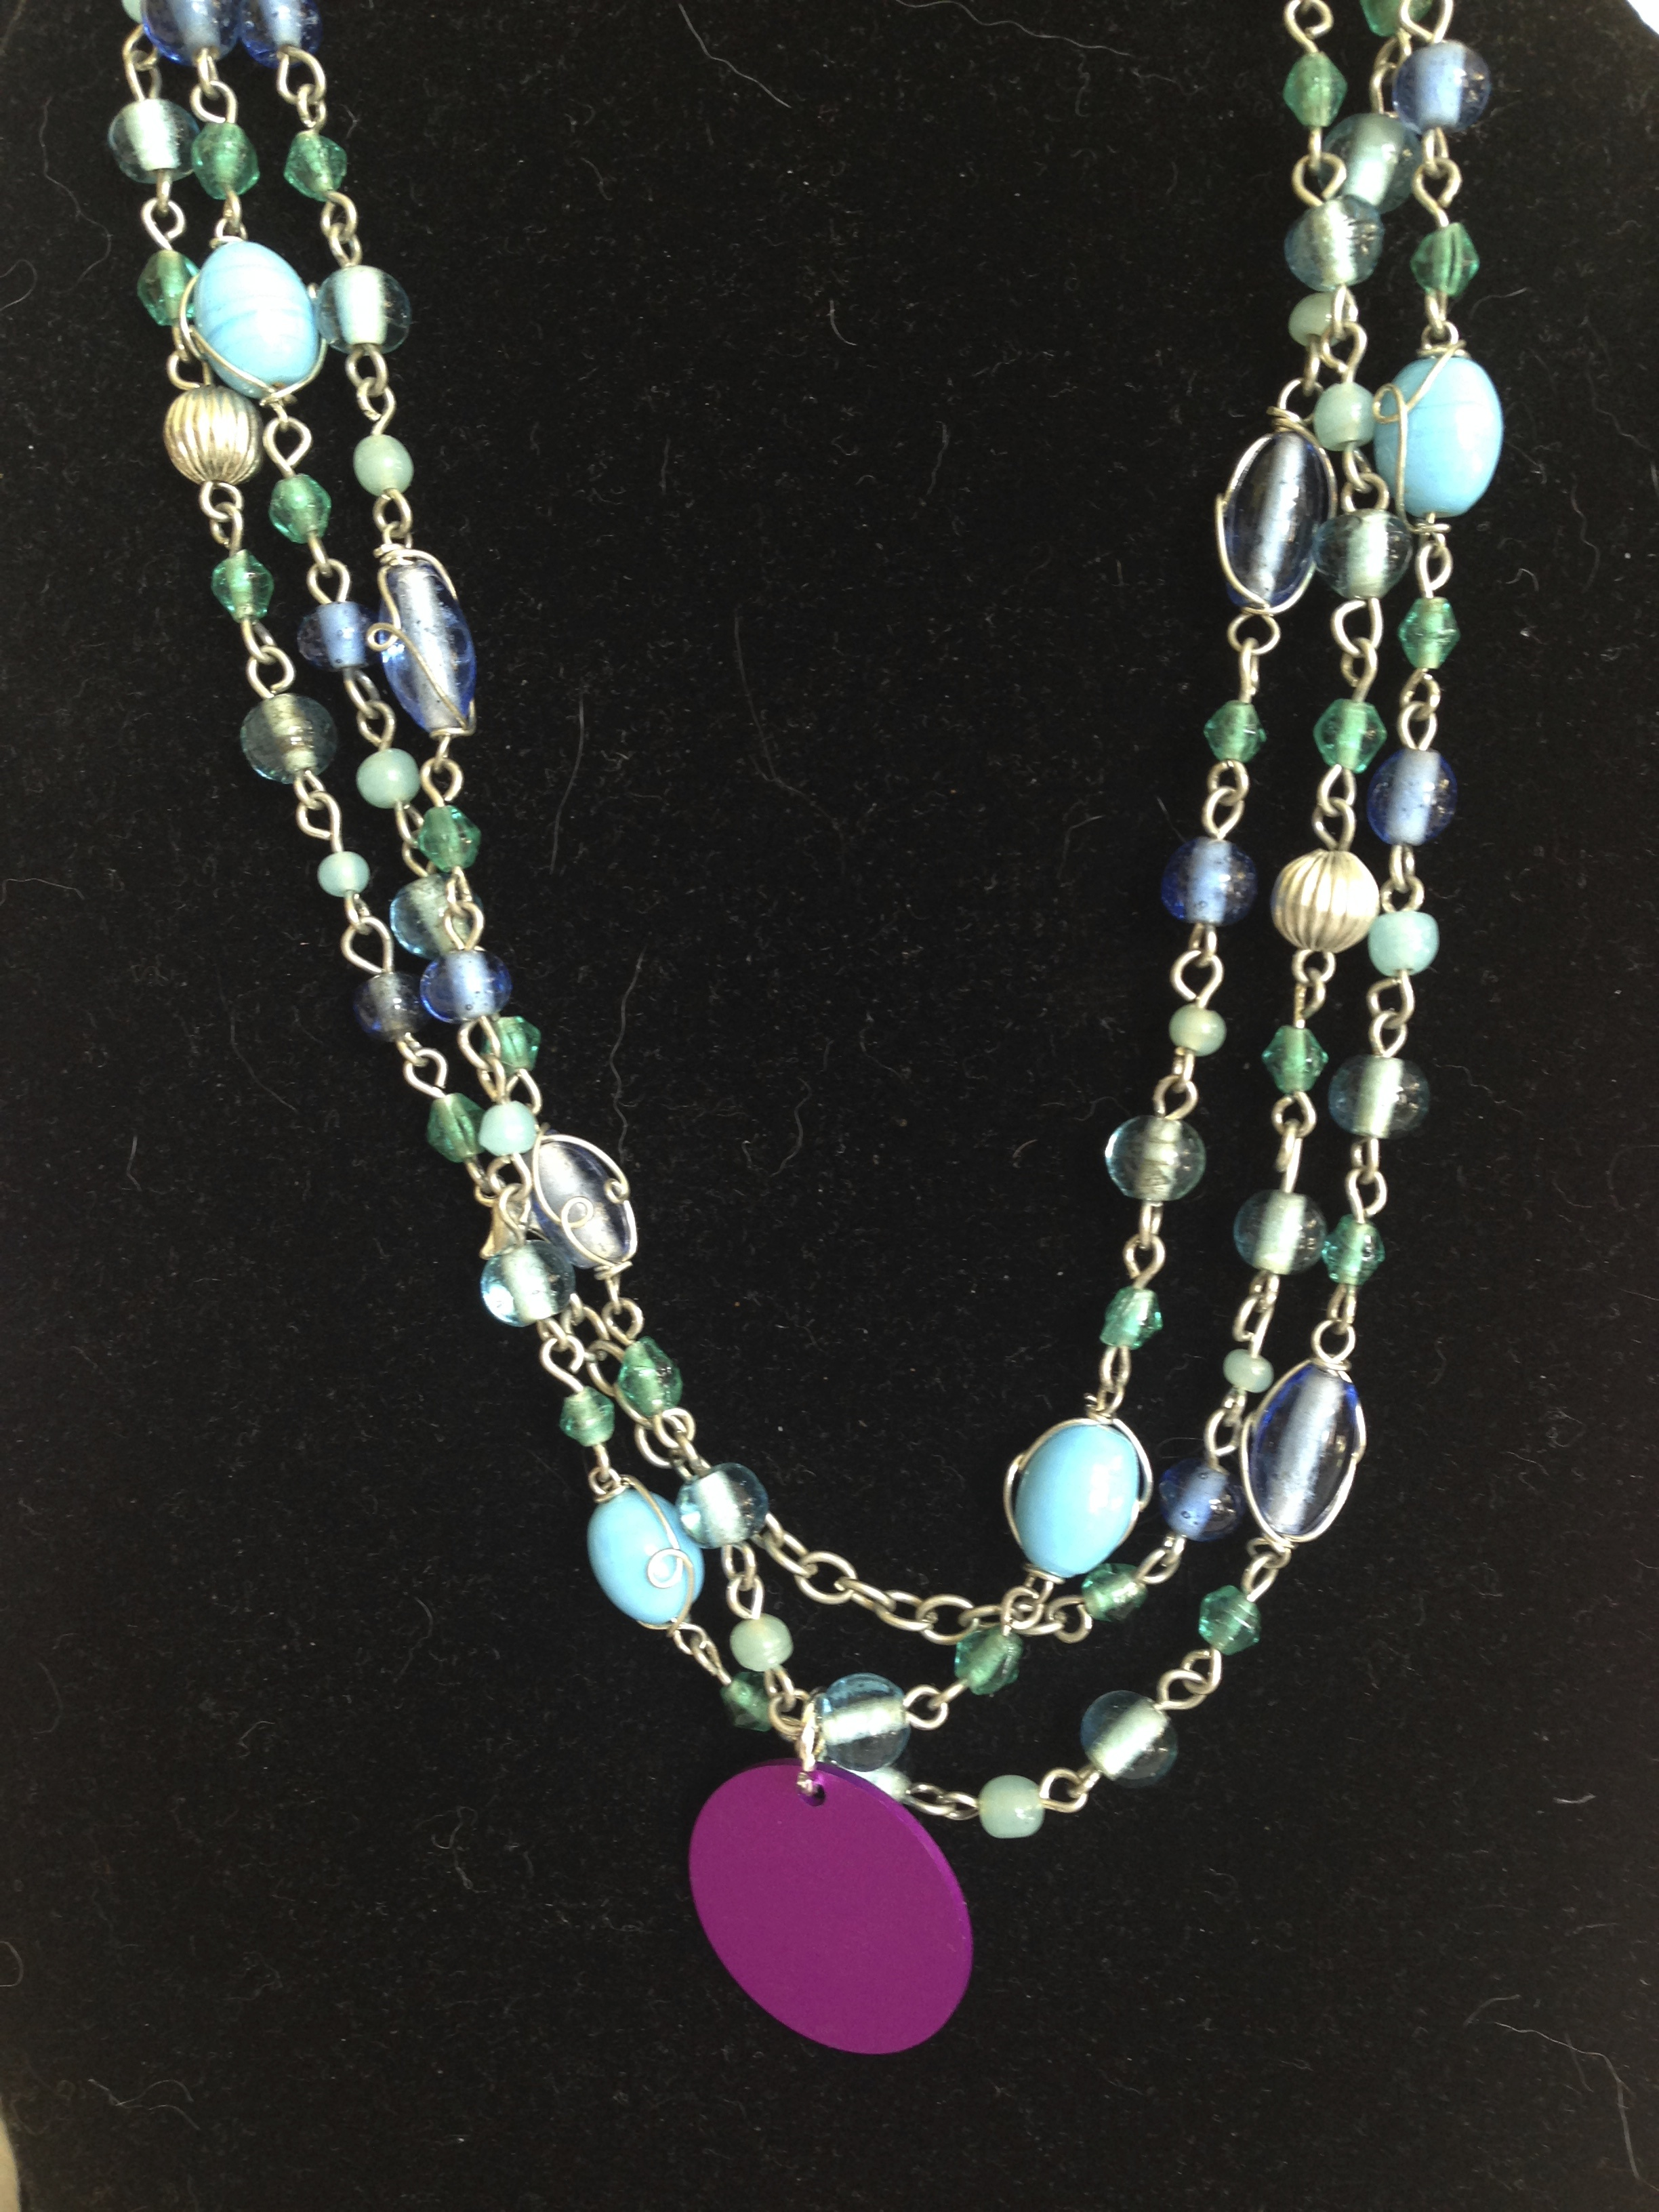 Blue Versatile necklace with Disk